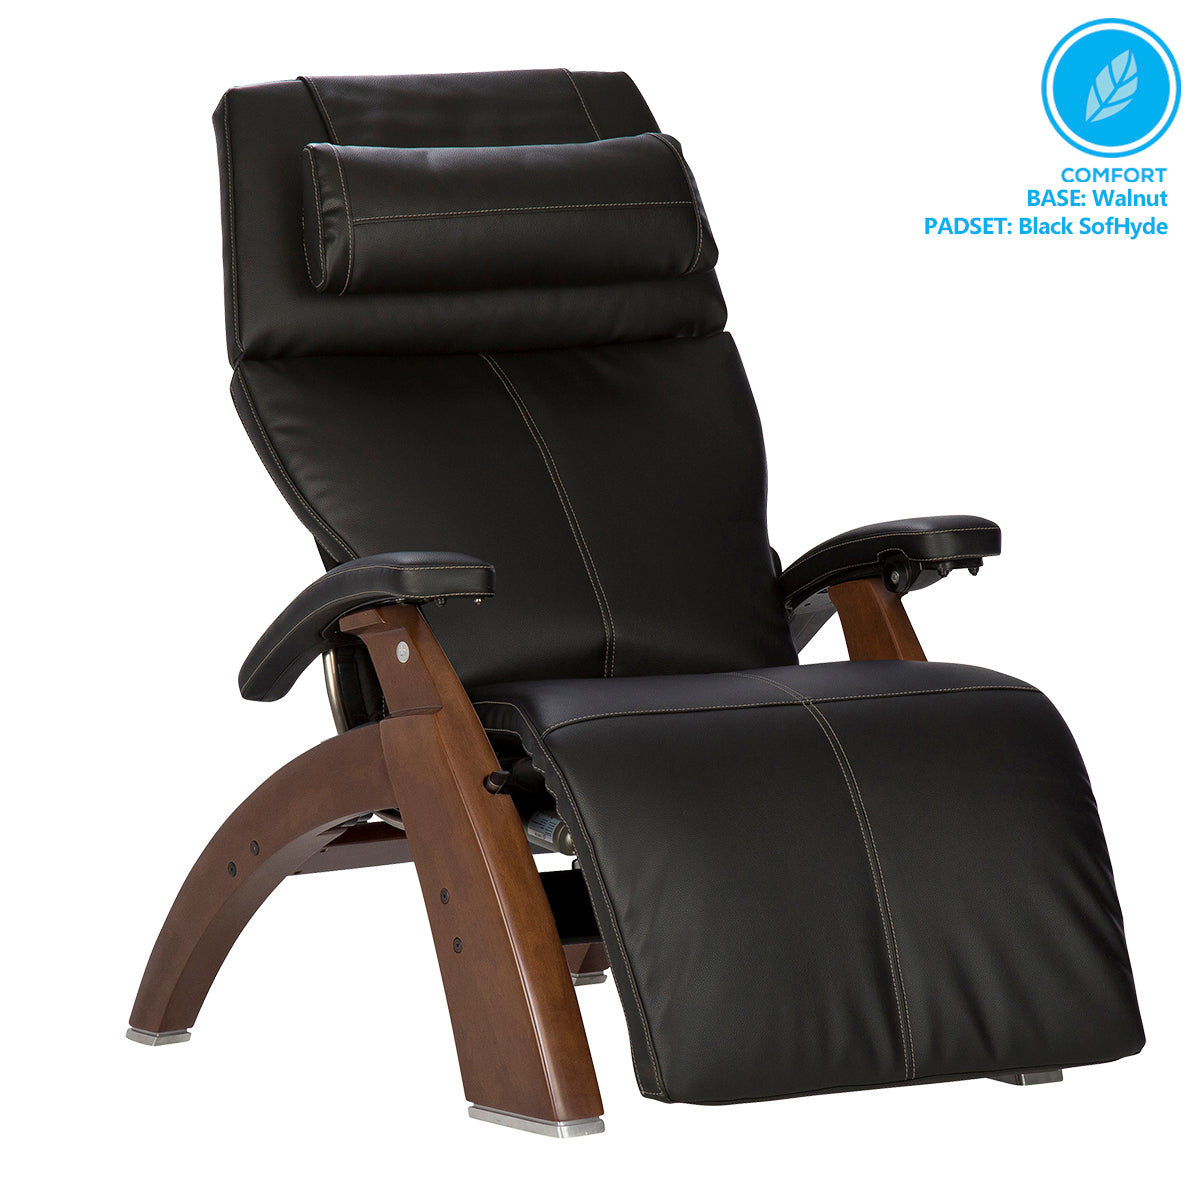 Human Touch Perfect Chair PC-610 Omni-Motion Classic Zero Gravity Chair - Walnut Black SofHydeHuman Touch Perfect Chair PC-610 2